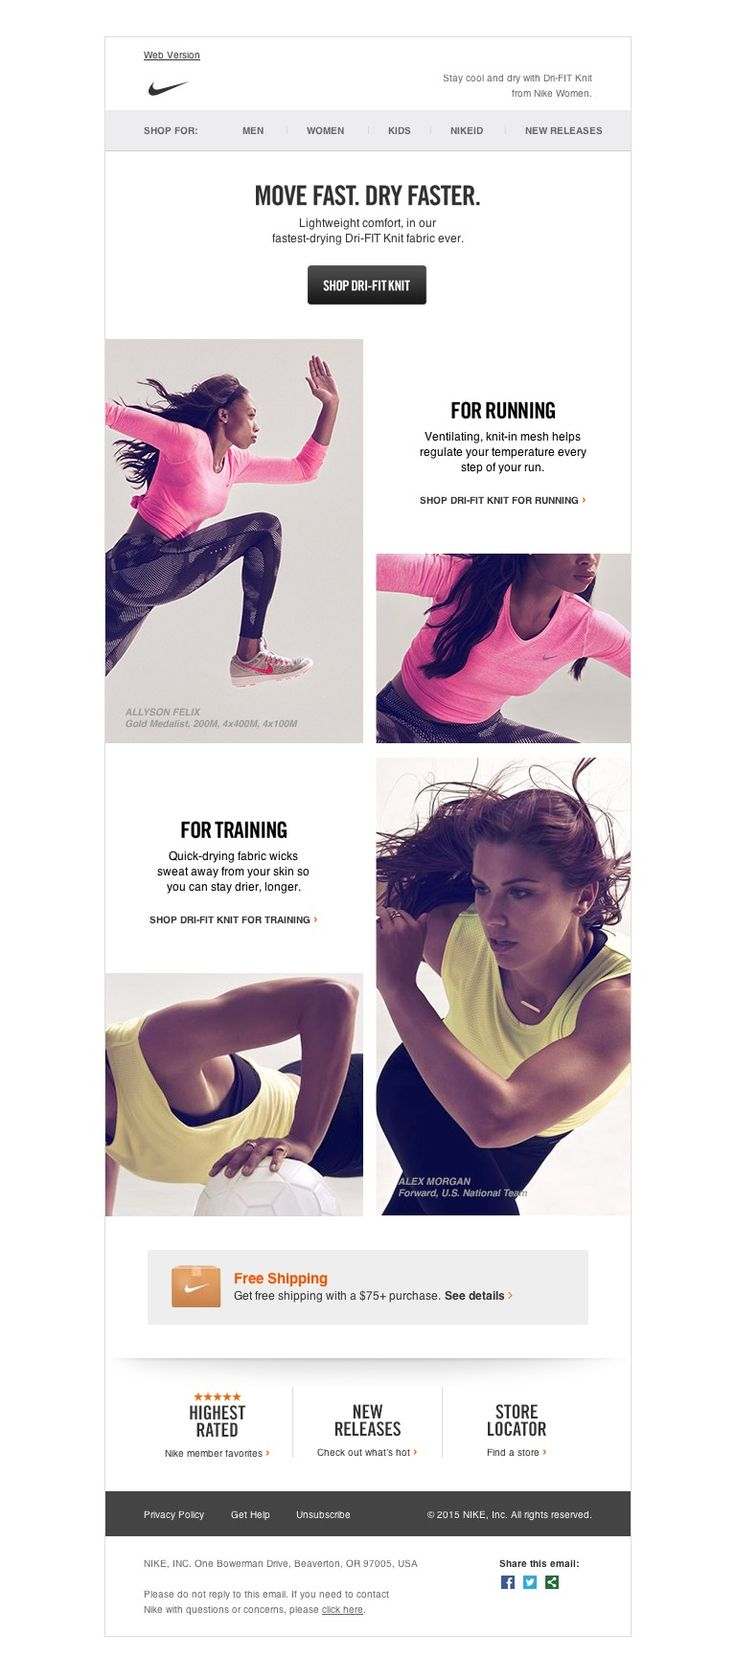 Nike - Get Moving: All New Dri-FIT Knit from Nike Women